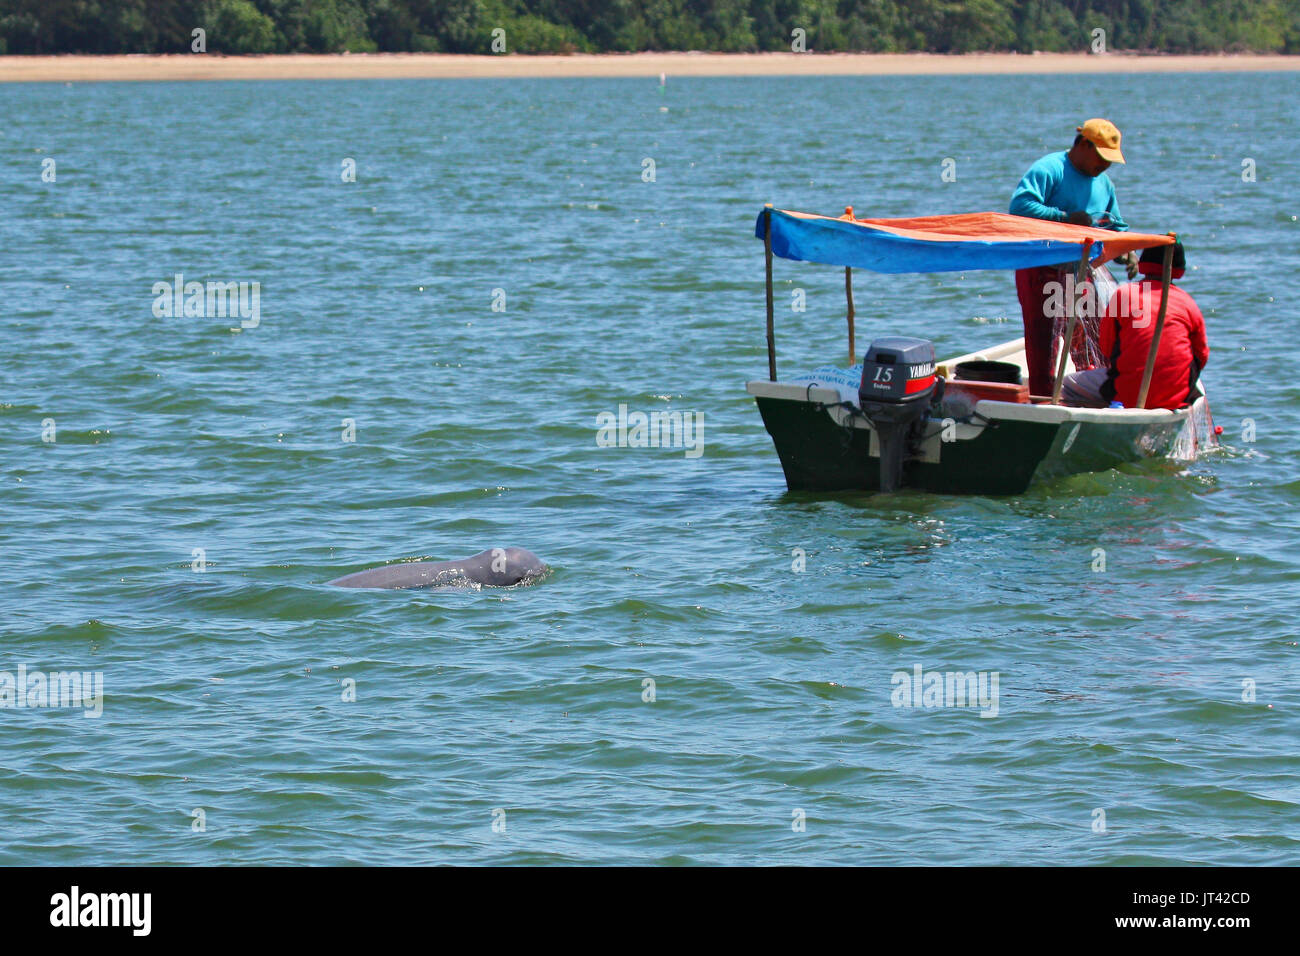 Irrawaddy Dolphin (Orcaella brevirostris) hanging around fishing boats trying to get a free breakfast in the estuarine waters of Santubong, Sarawak - Stock Image